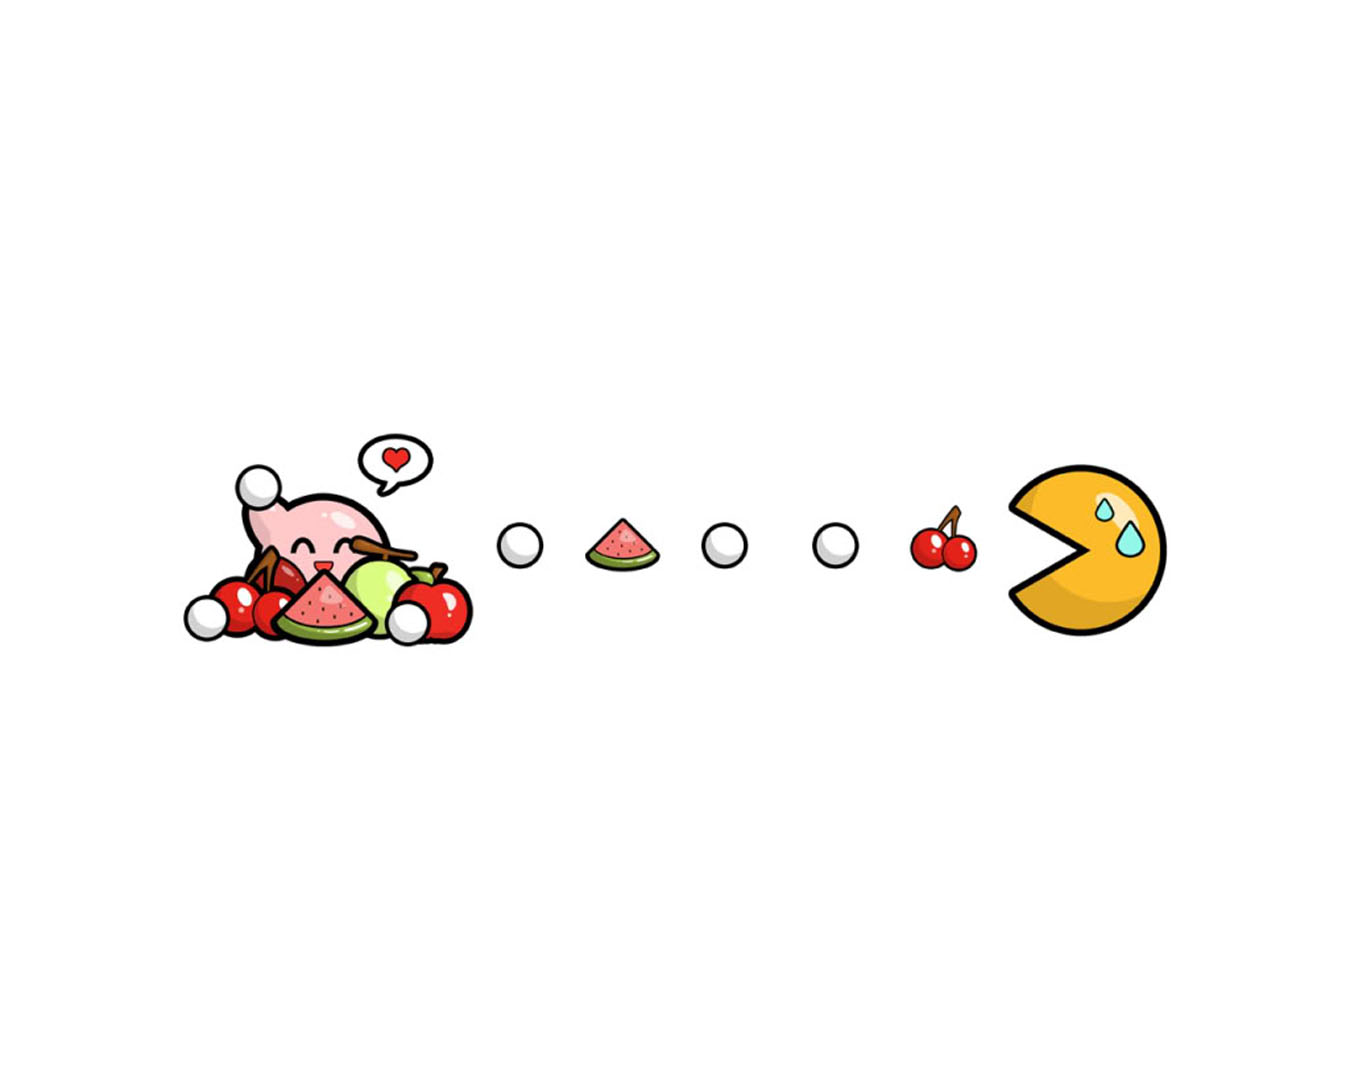 pacman and fruit Wallpaper Background thumbnail